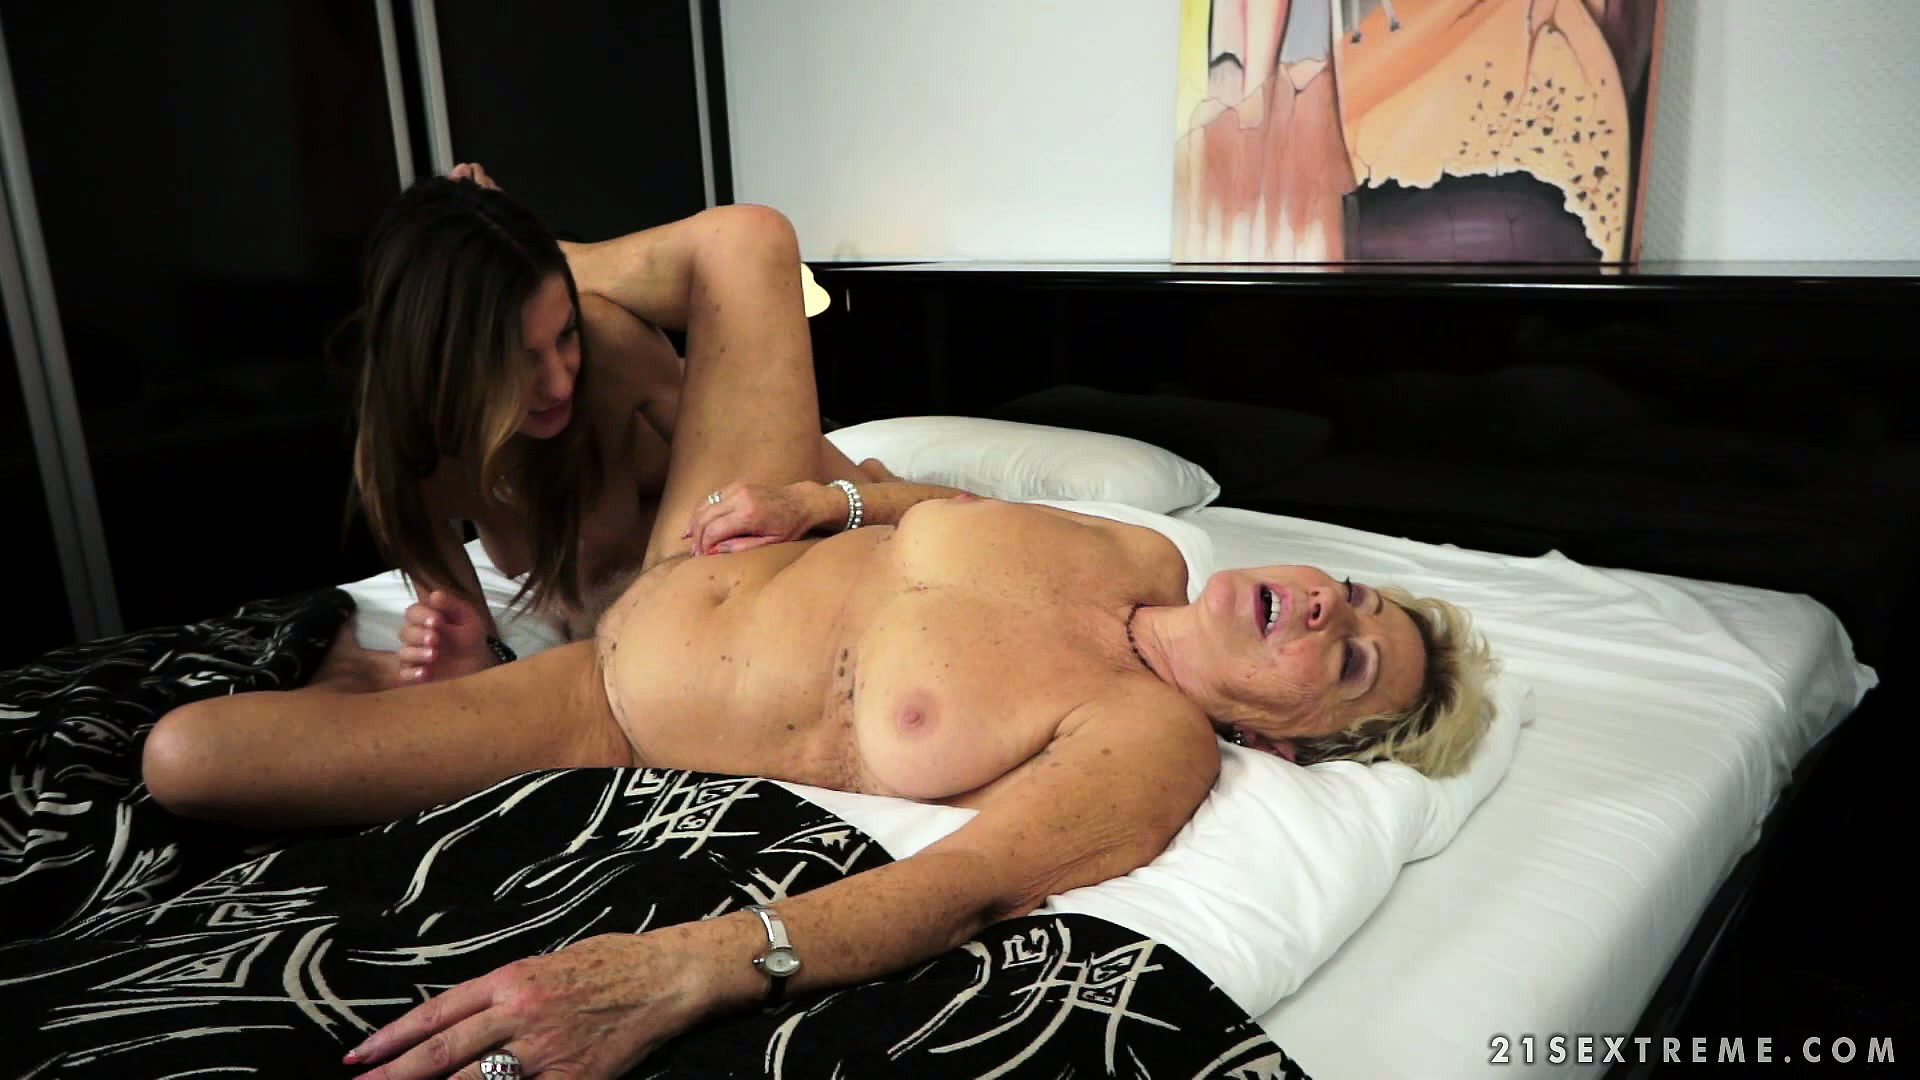 Porno Video of Plumper Blonde Granny Introduces Her Granddaughter To Her Fat, Wet Snatch